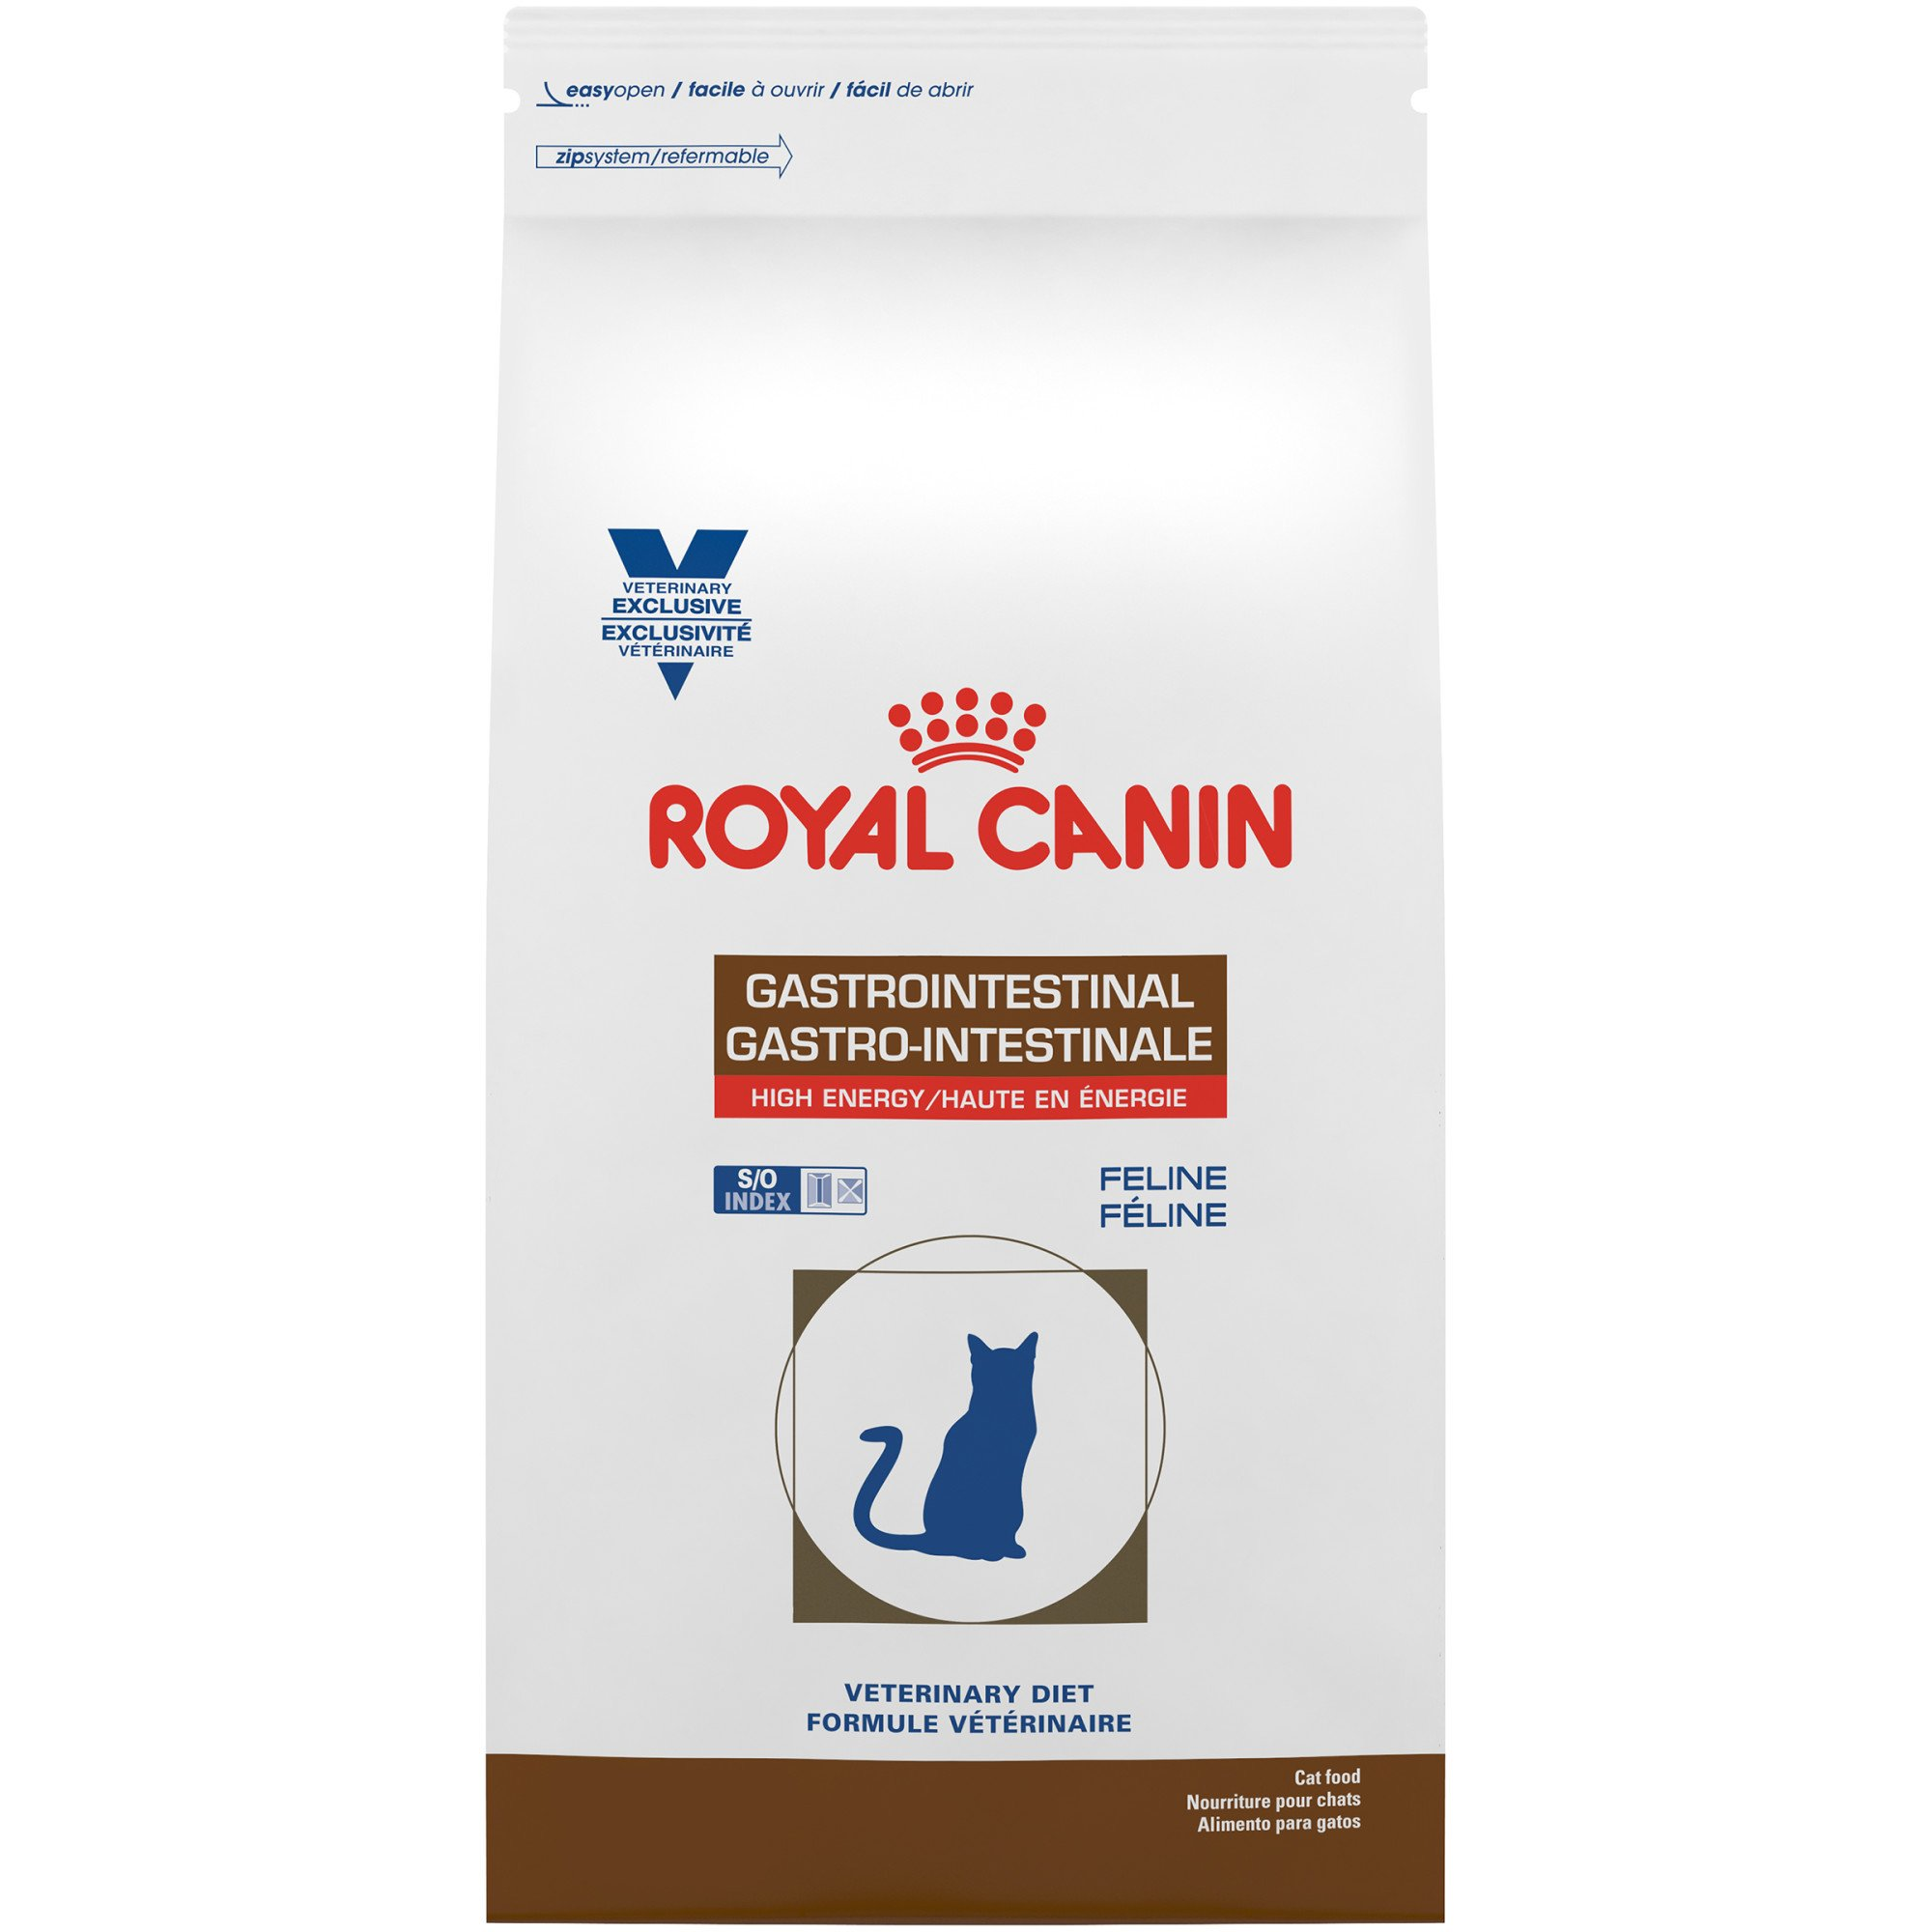 Royal Canin Veterinary Diet Gastrointestinal High Energy